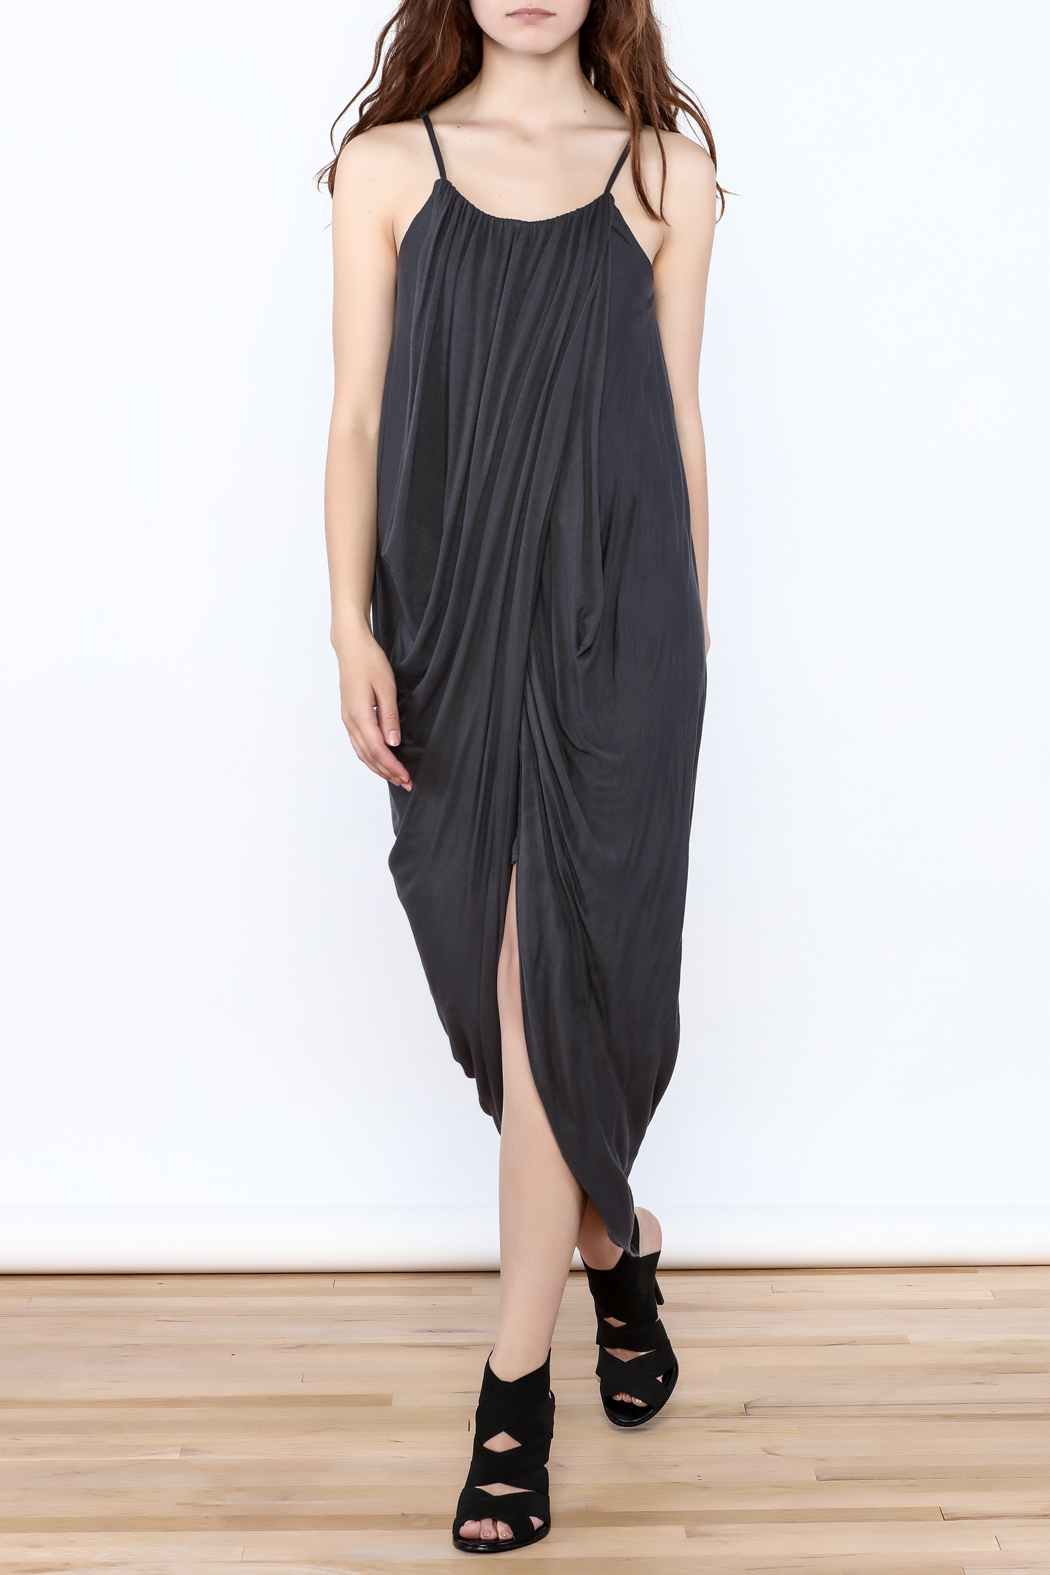 HYFVE Charcoal Drapey Sleeveless Dress - Front Full Image